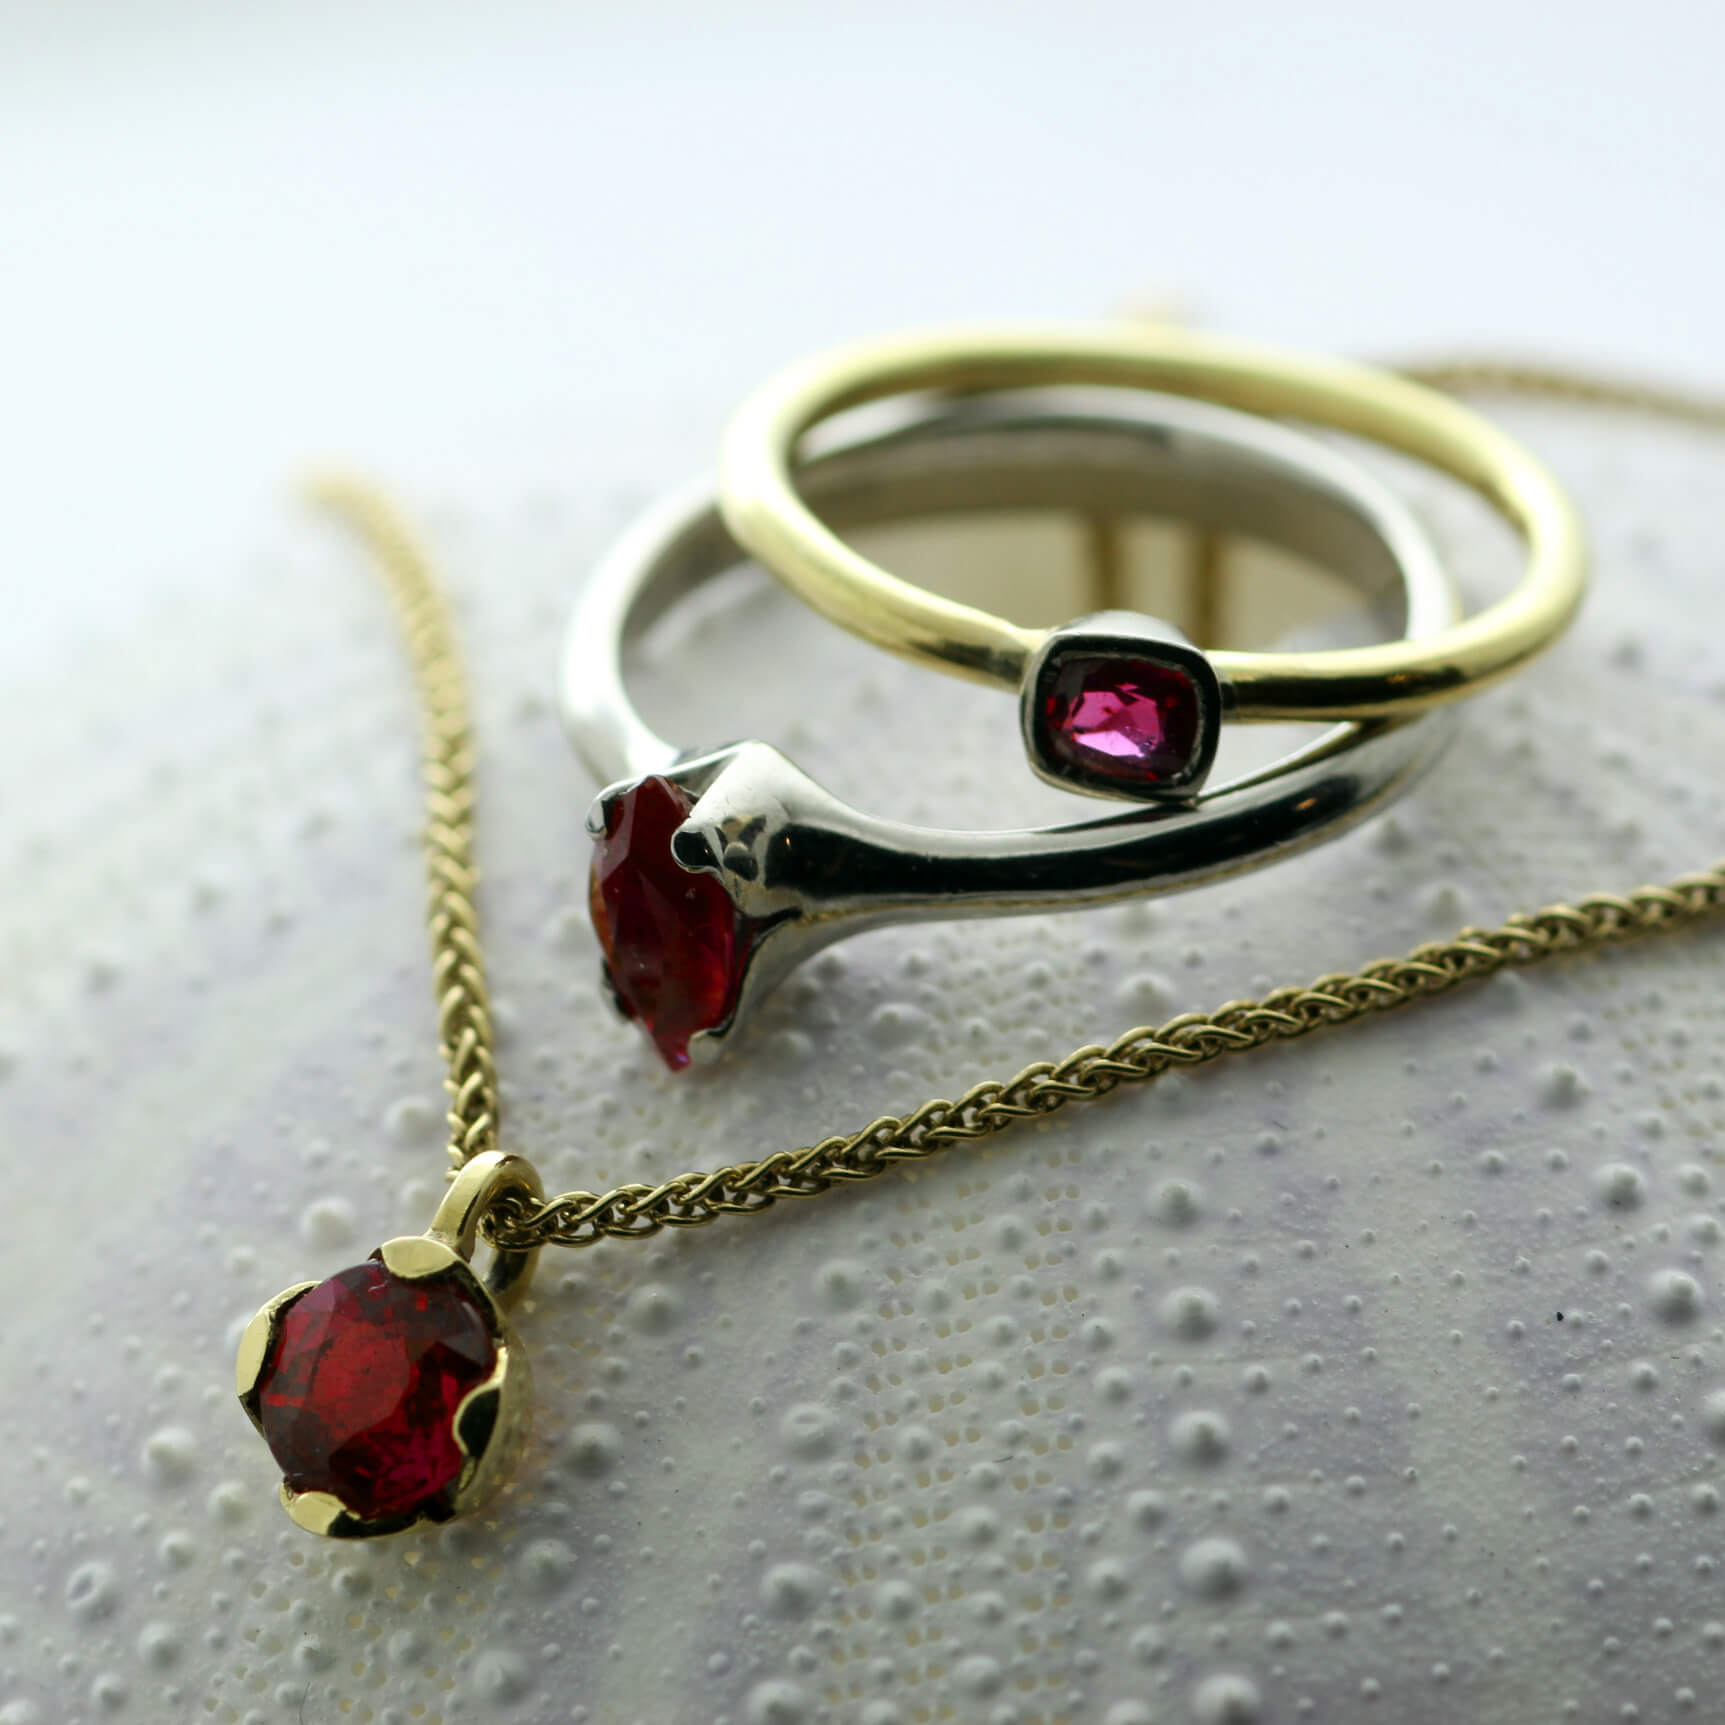 Ruby birthstone jewellery handmade by Julian Stephens Goldsmith